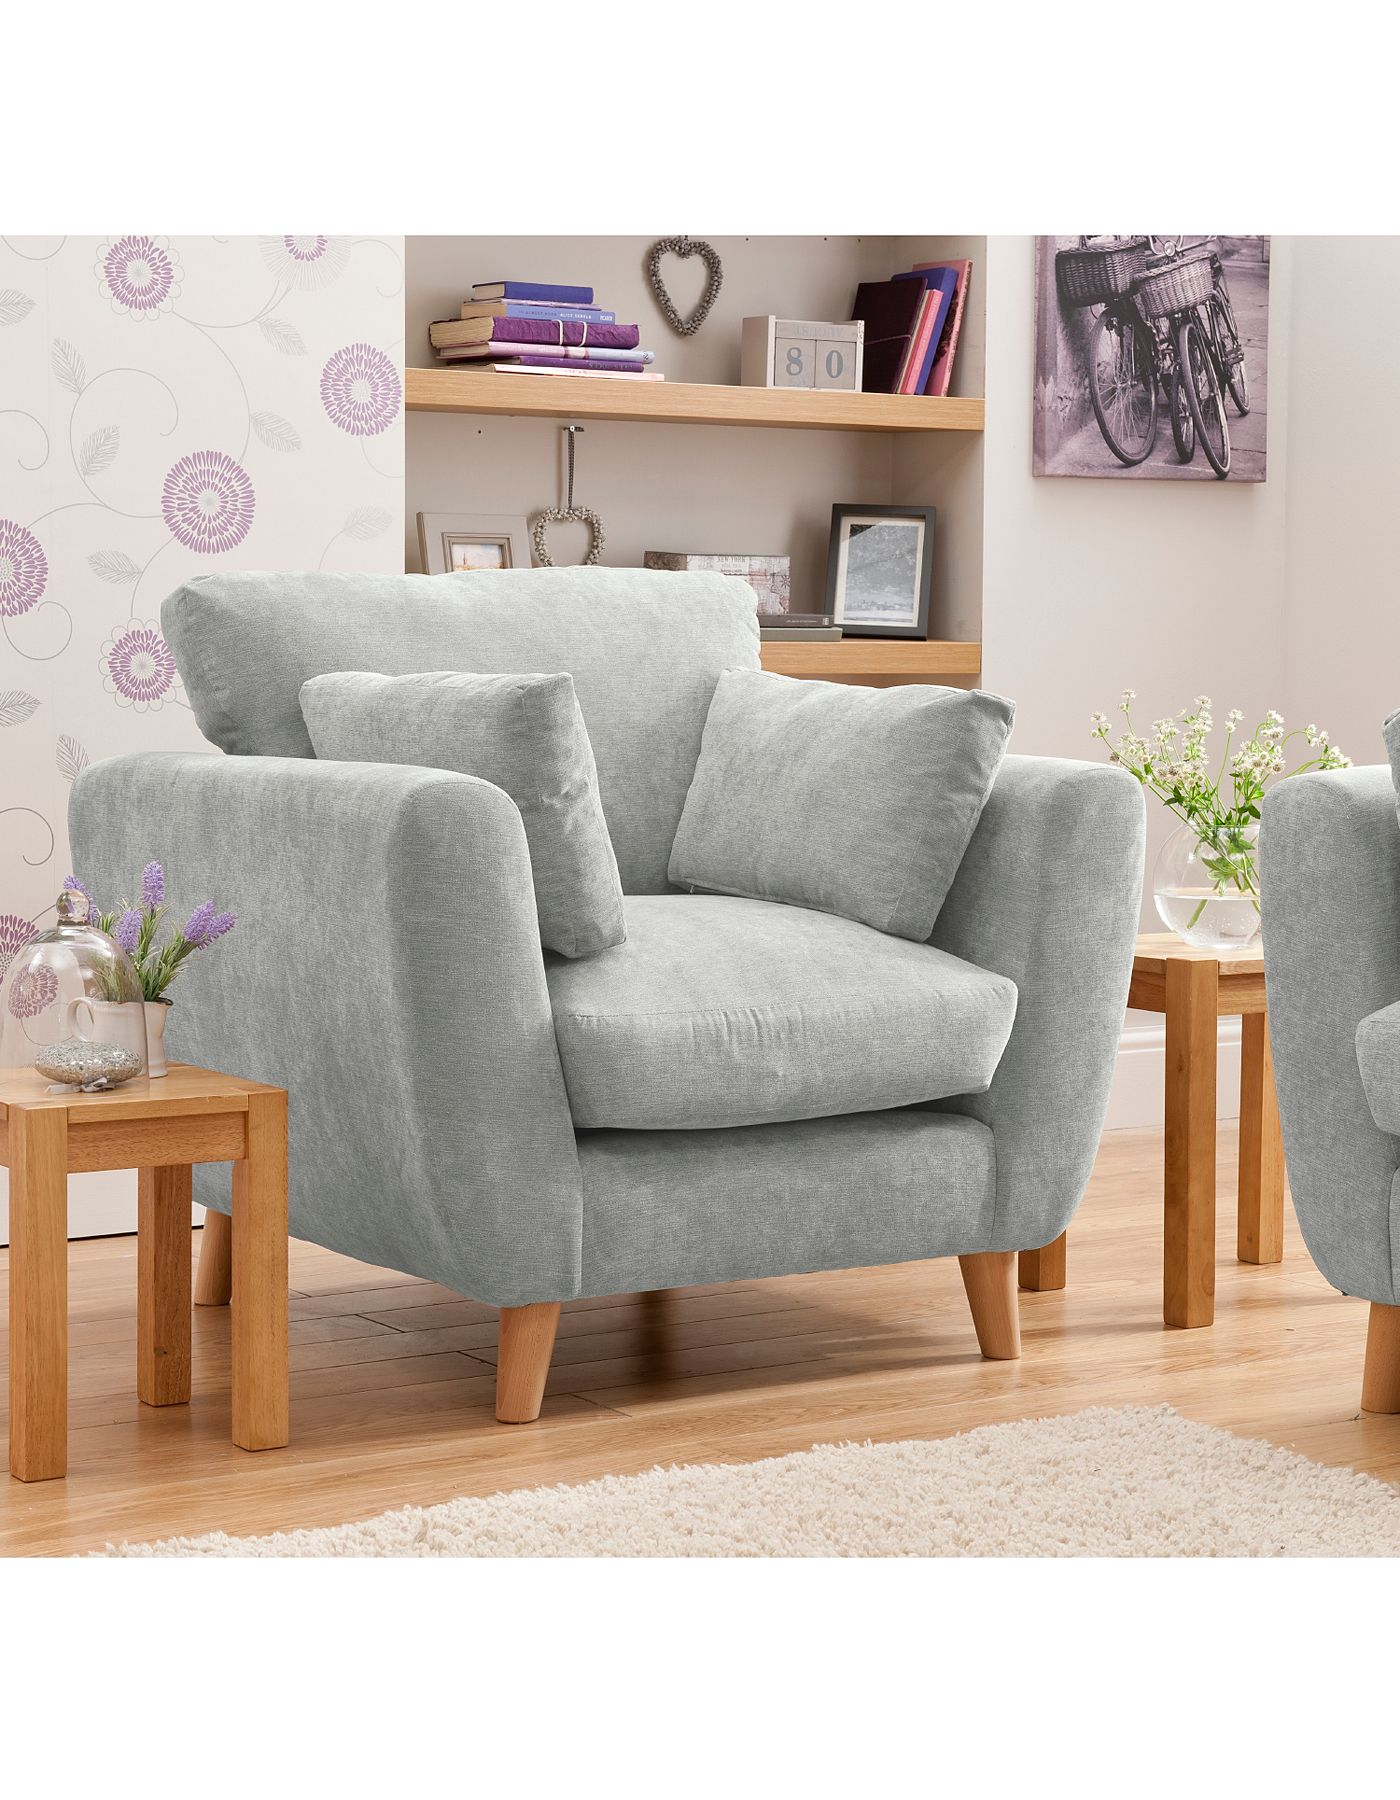 Sloane Armchair in Green | Sofas & Armchairs | ASDA direct | Dining ...